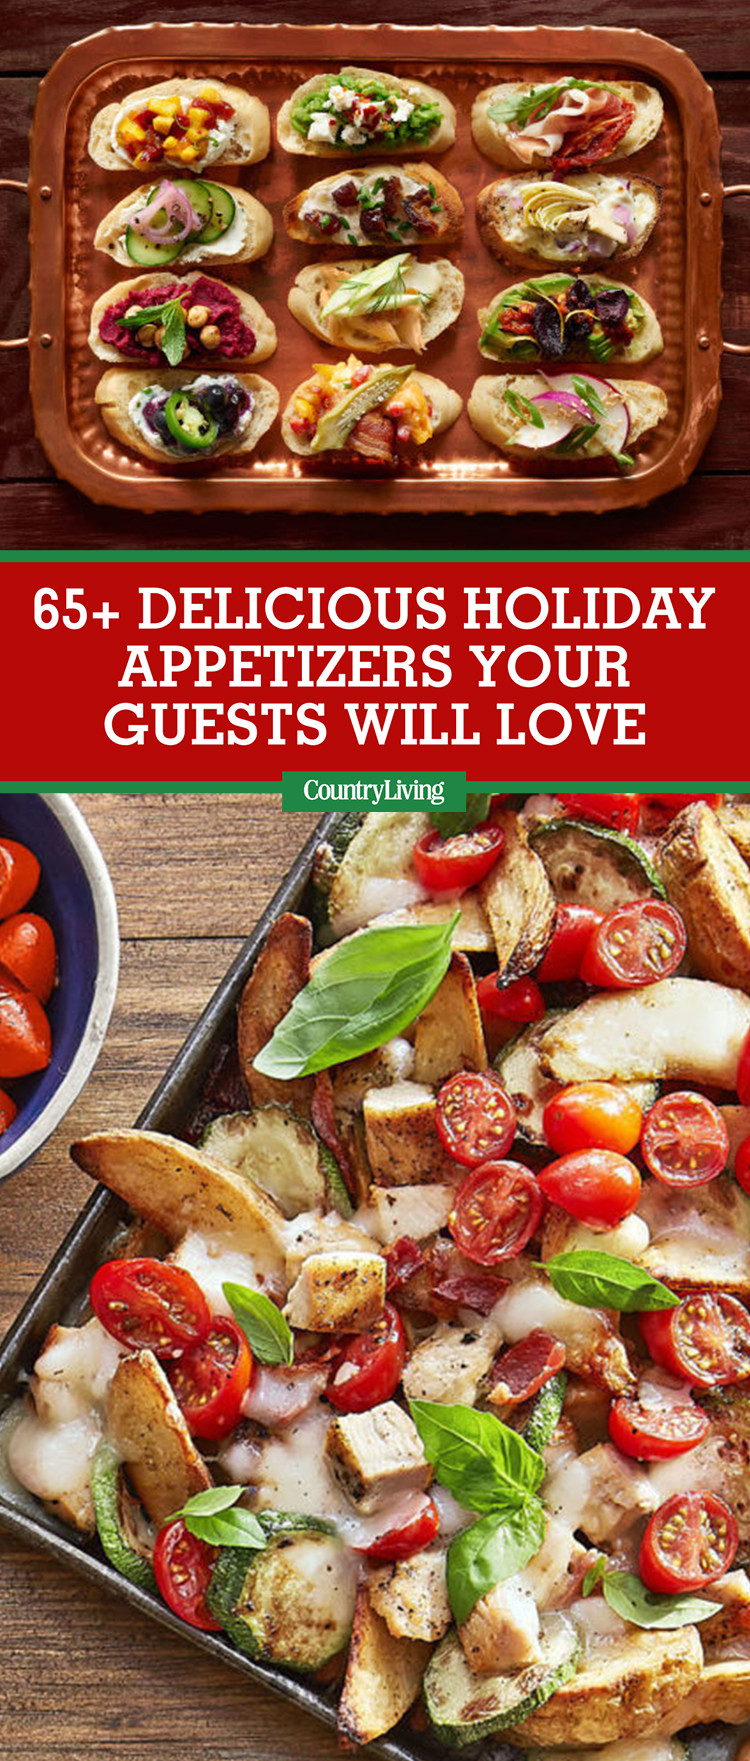 Christmas Recipes Appetizers  60 Easy Thanksgiving and Christmas Appetizer Recipes